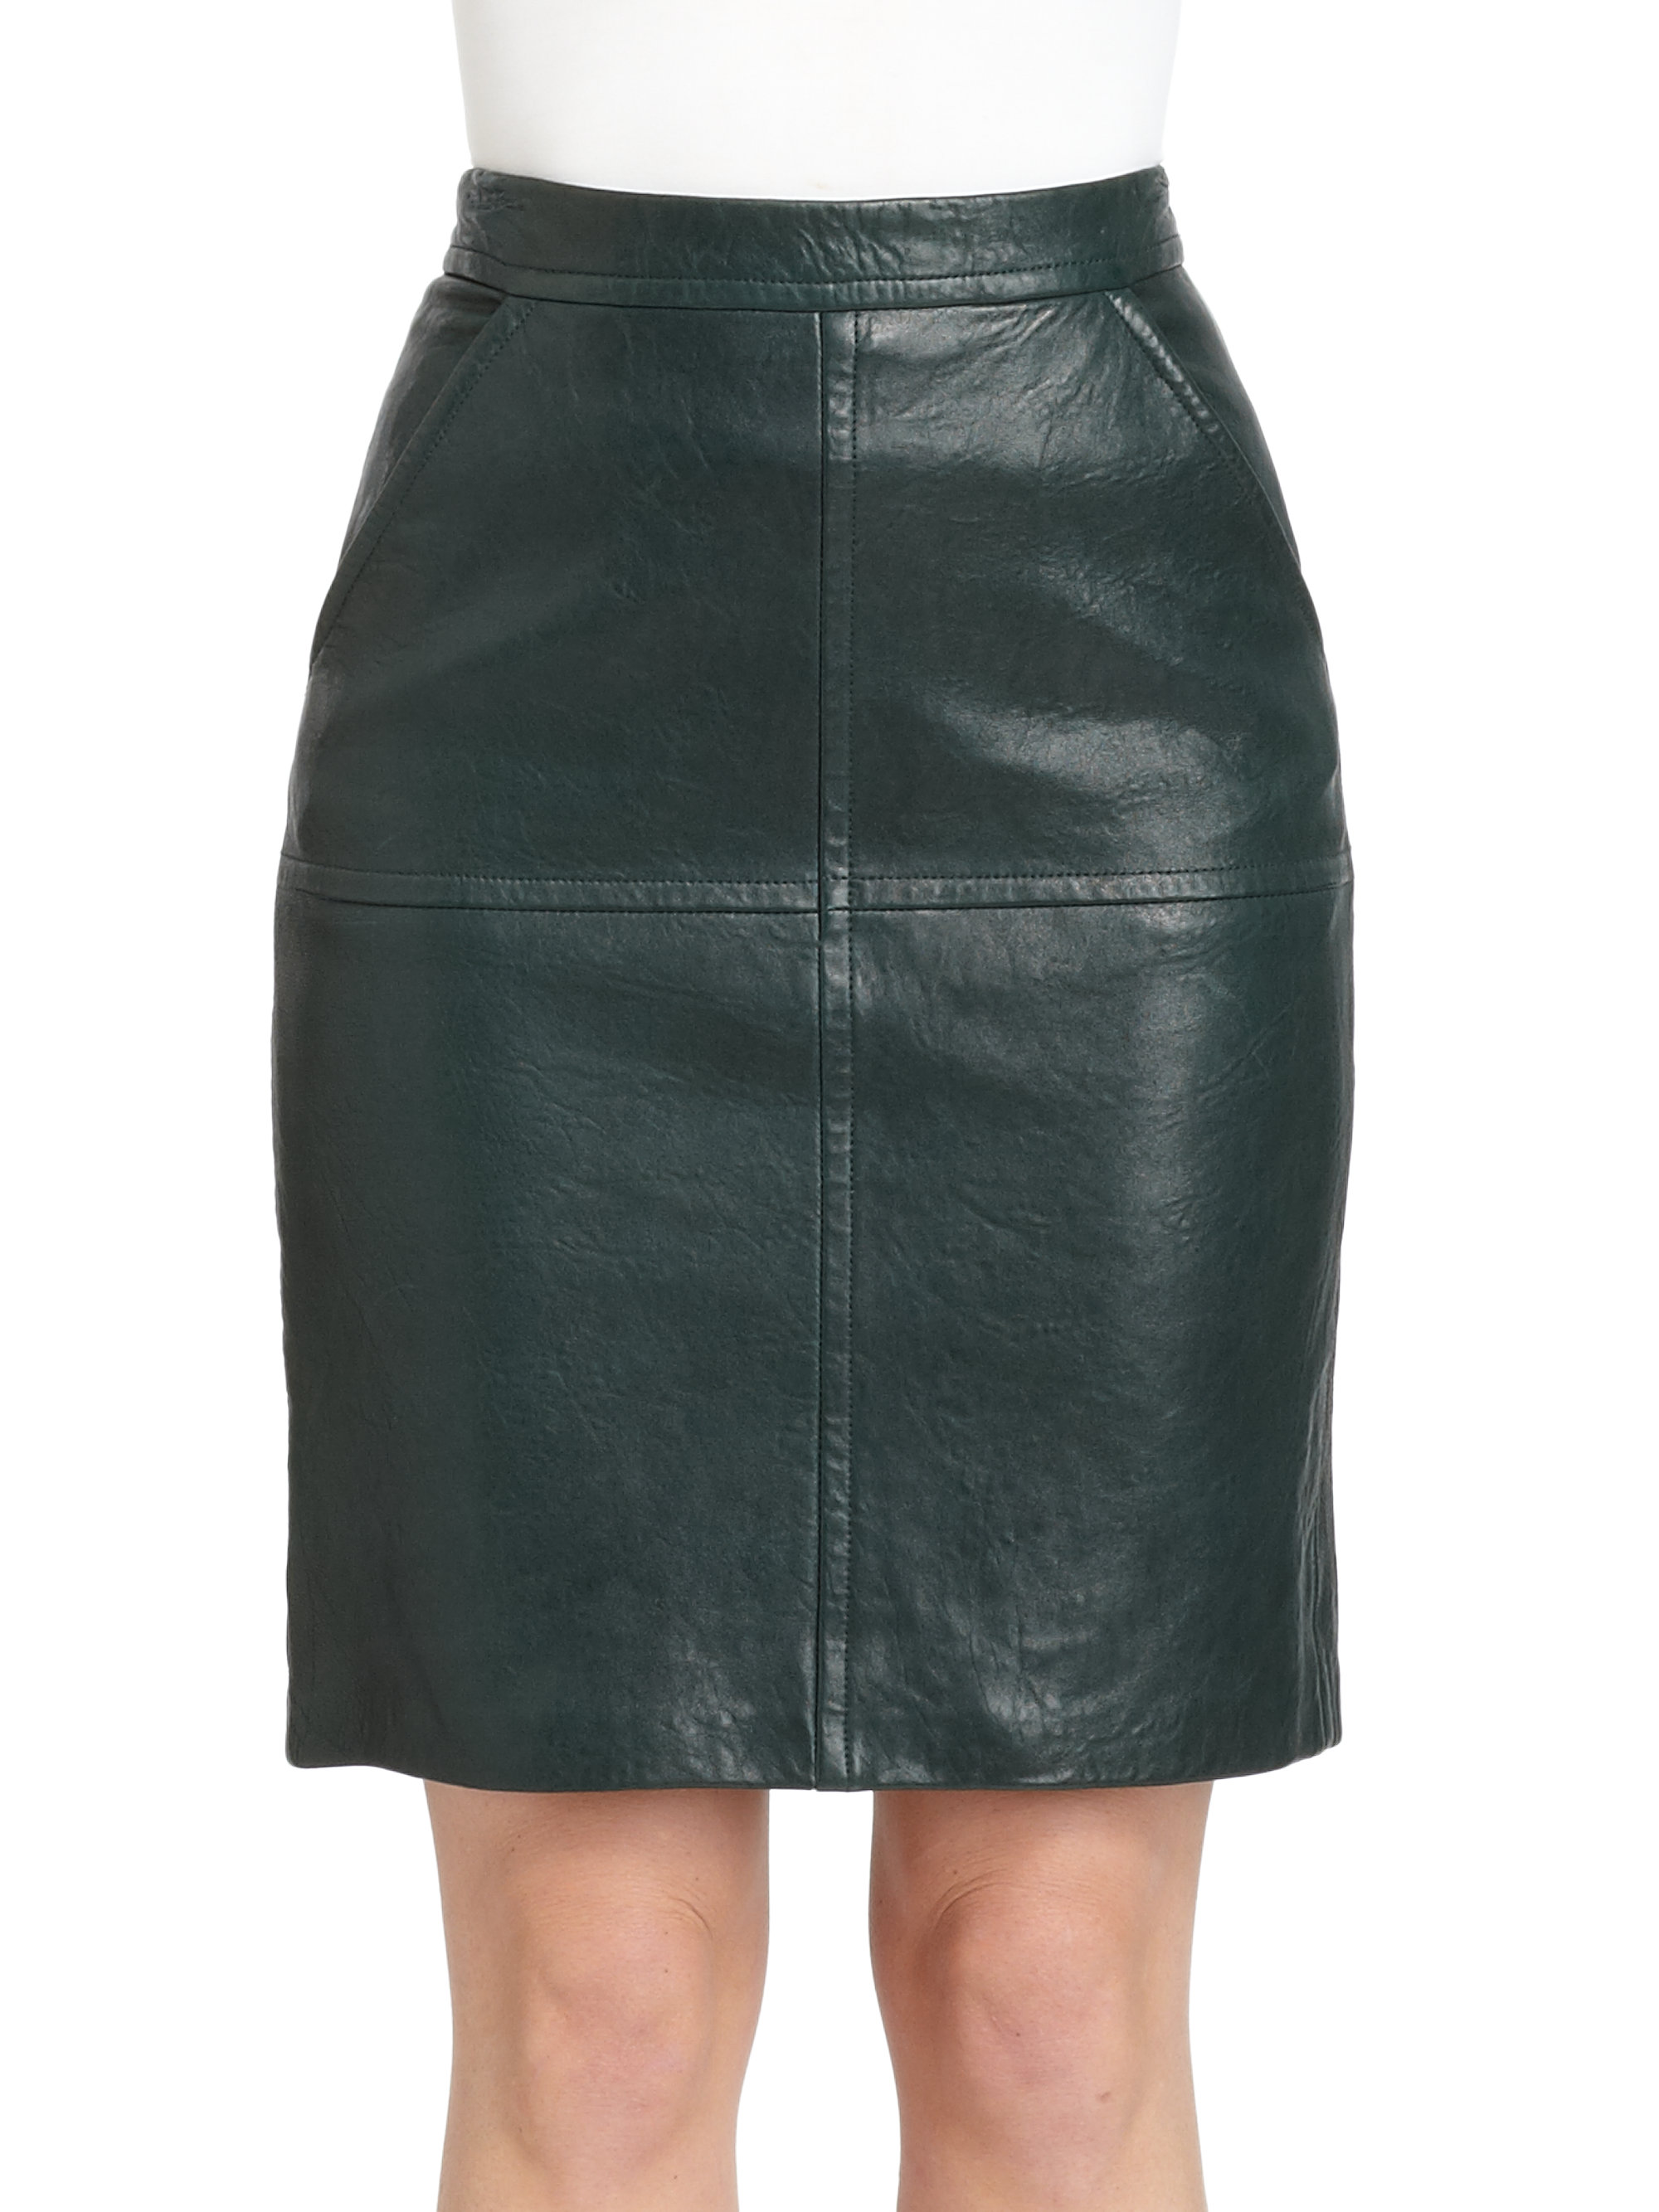 yigal azrou 235 l leather pencil skirt in green evergreen lyst